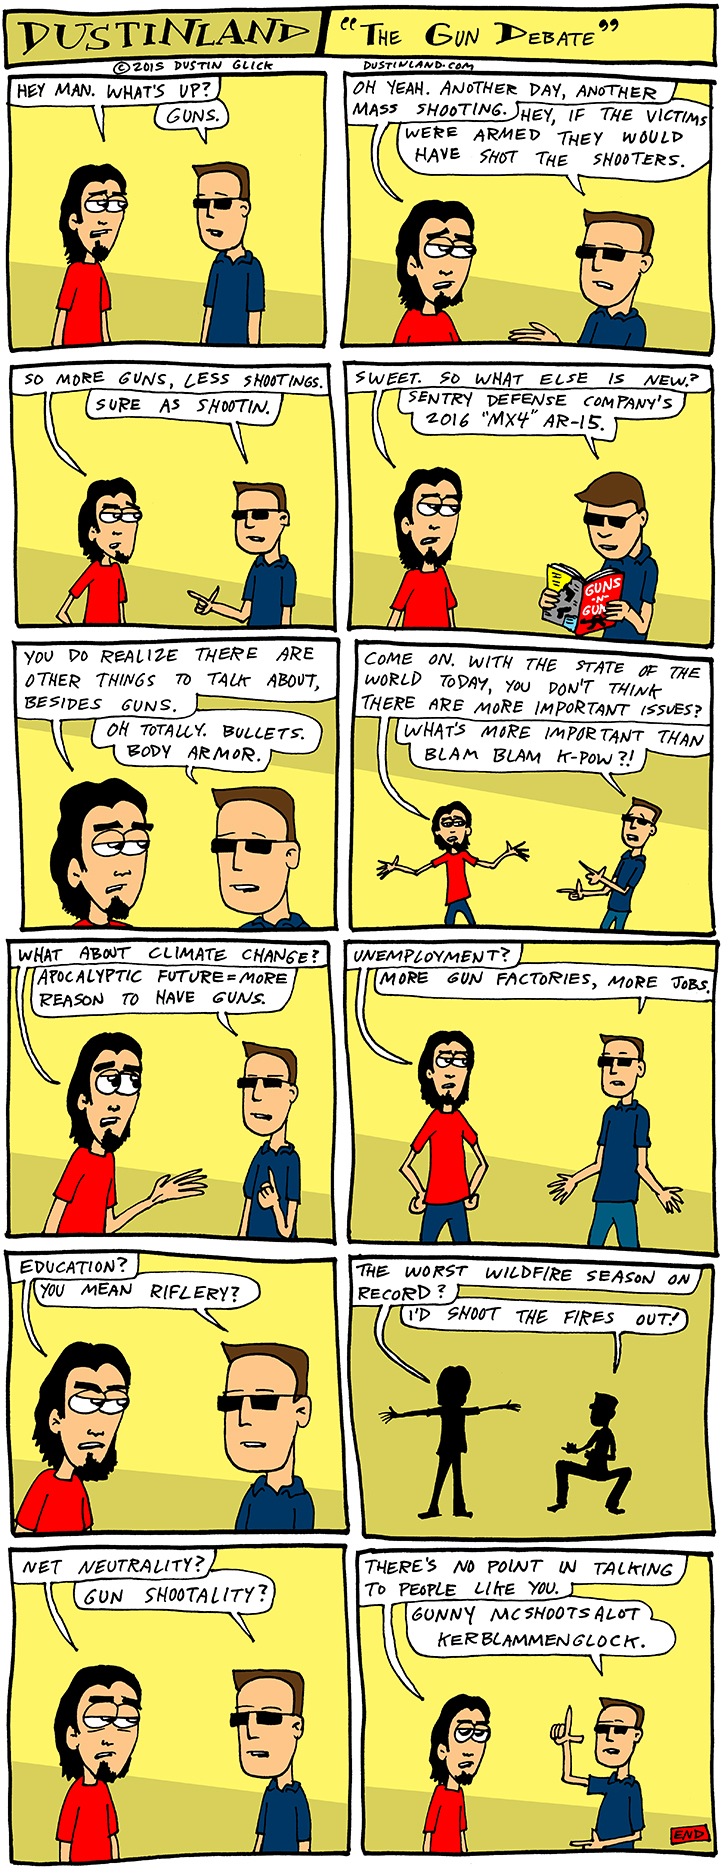 dustinland gun debate comic